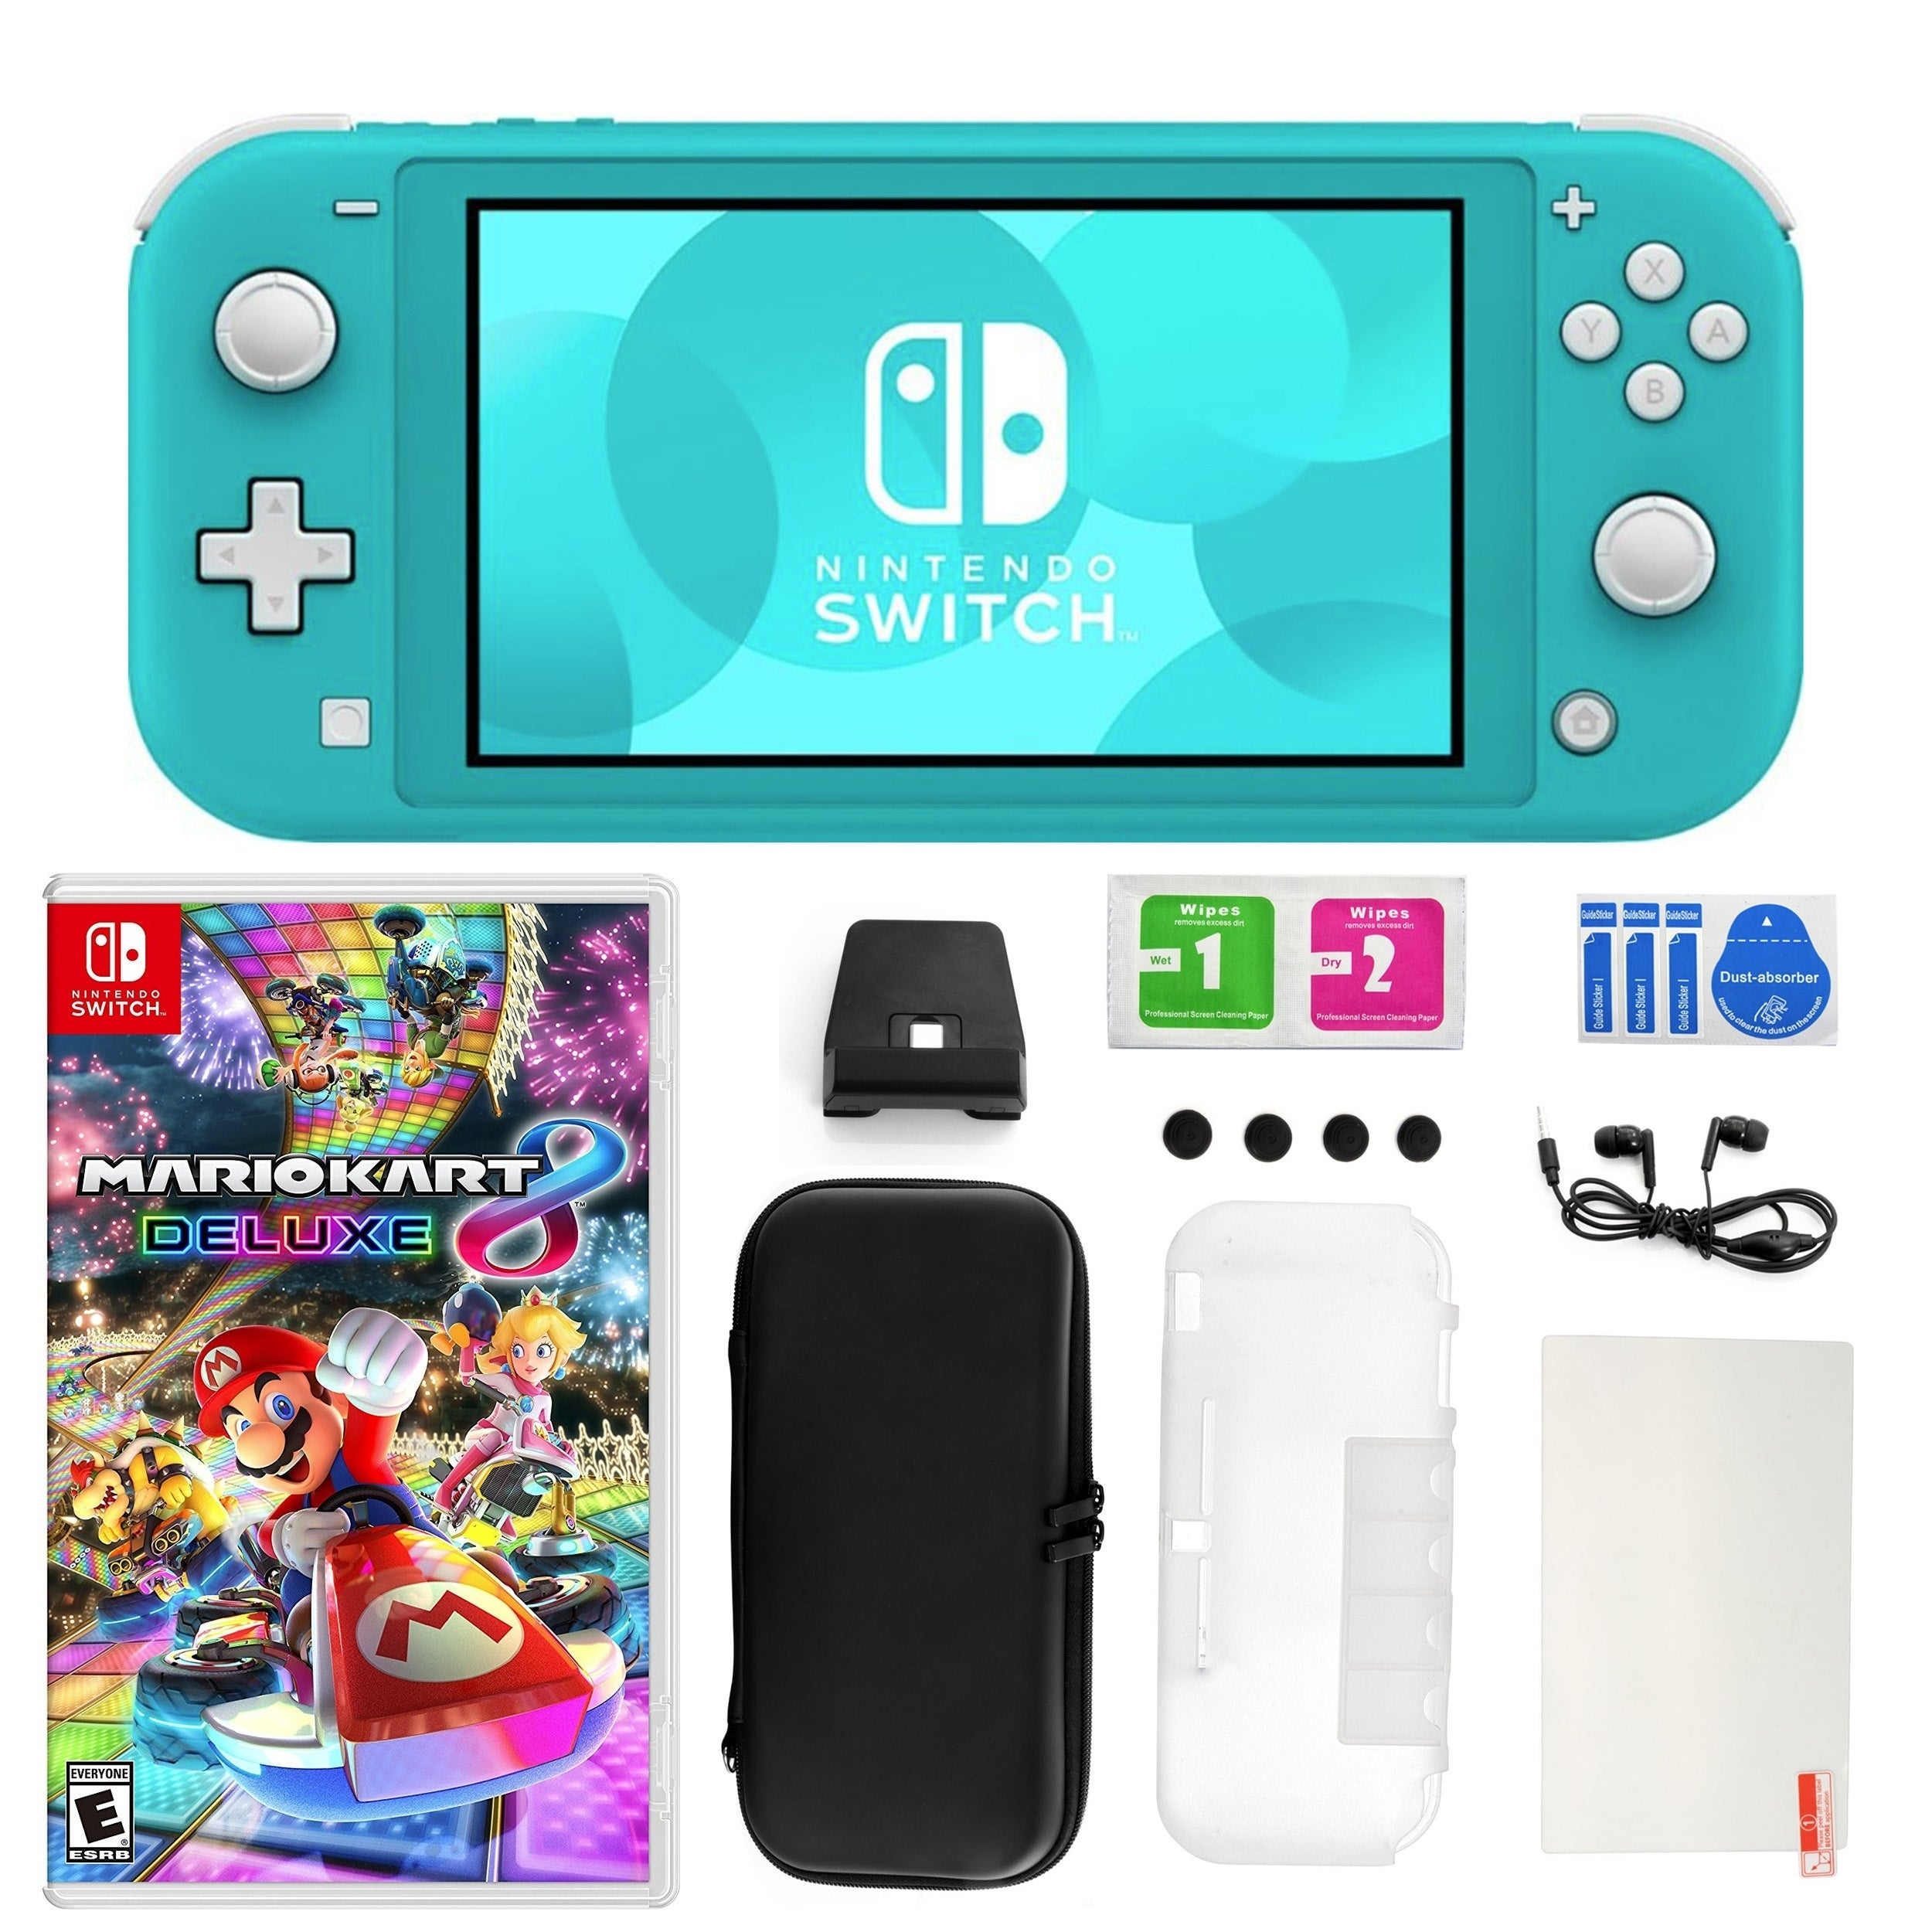 Nintendo Switch Lite Turquoise With Mario Kart 8 Deluxe Accessory Kit N A